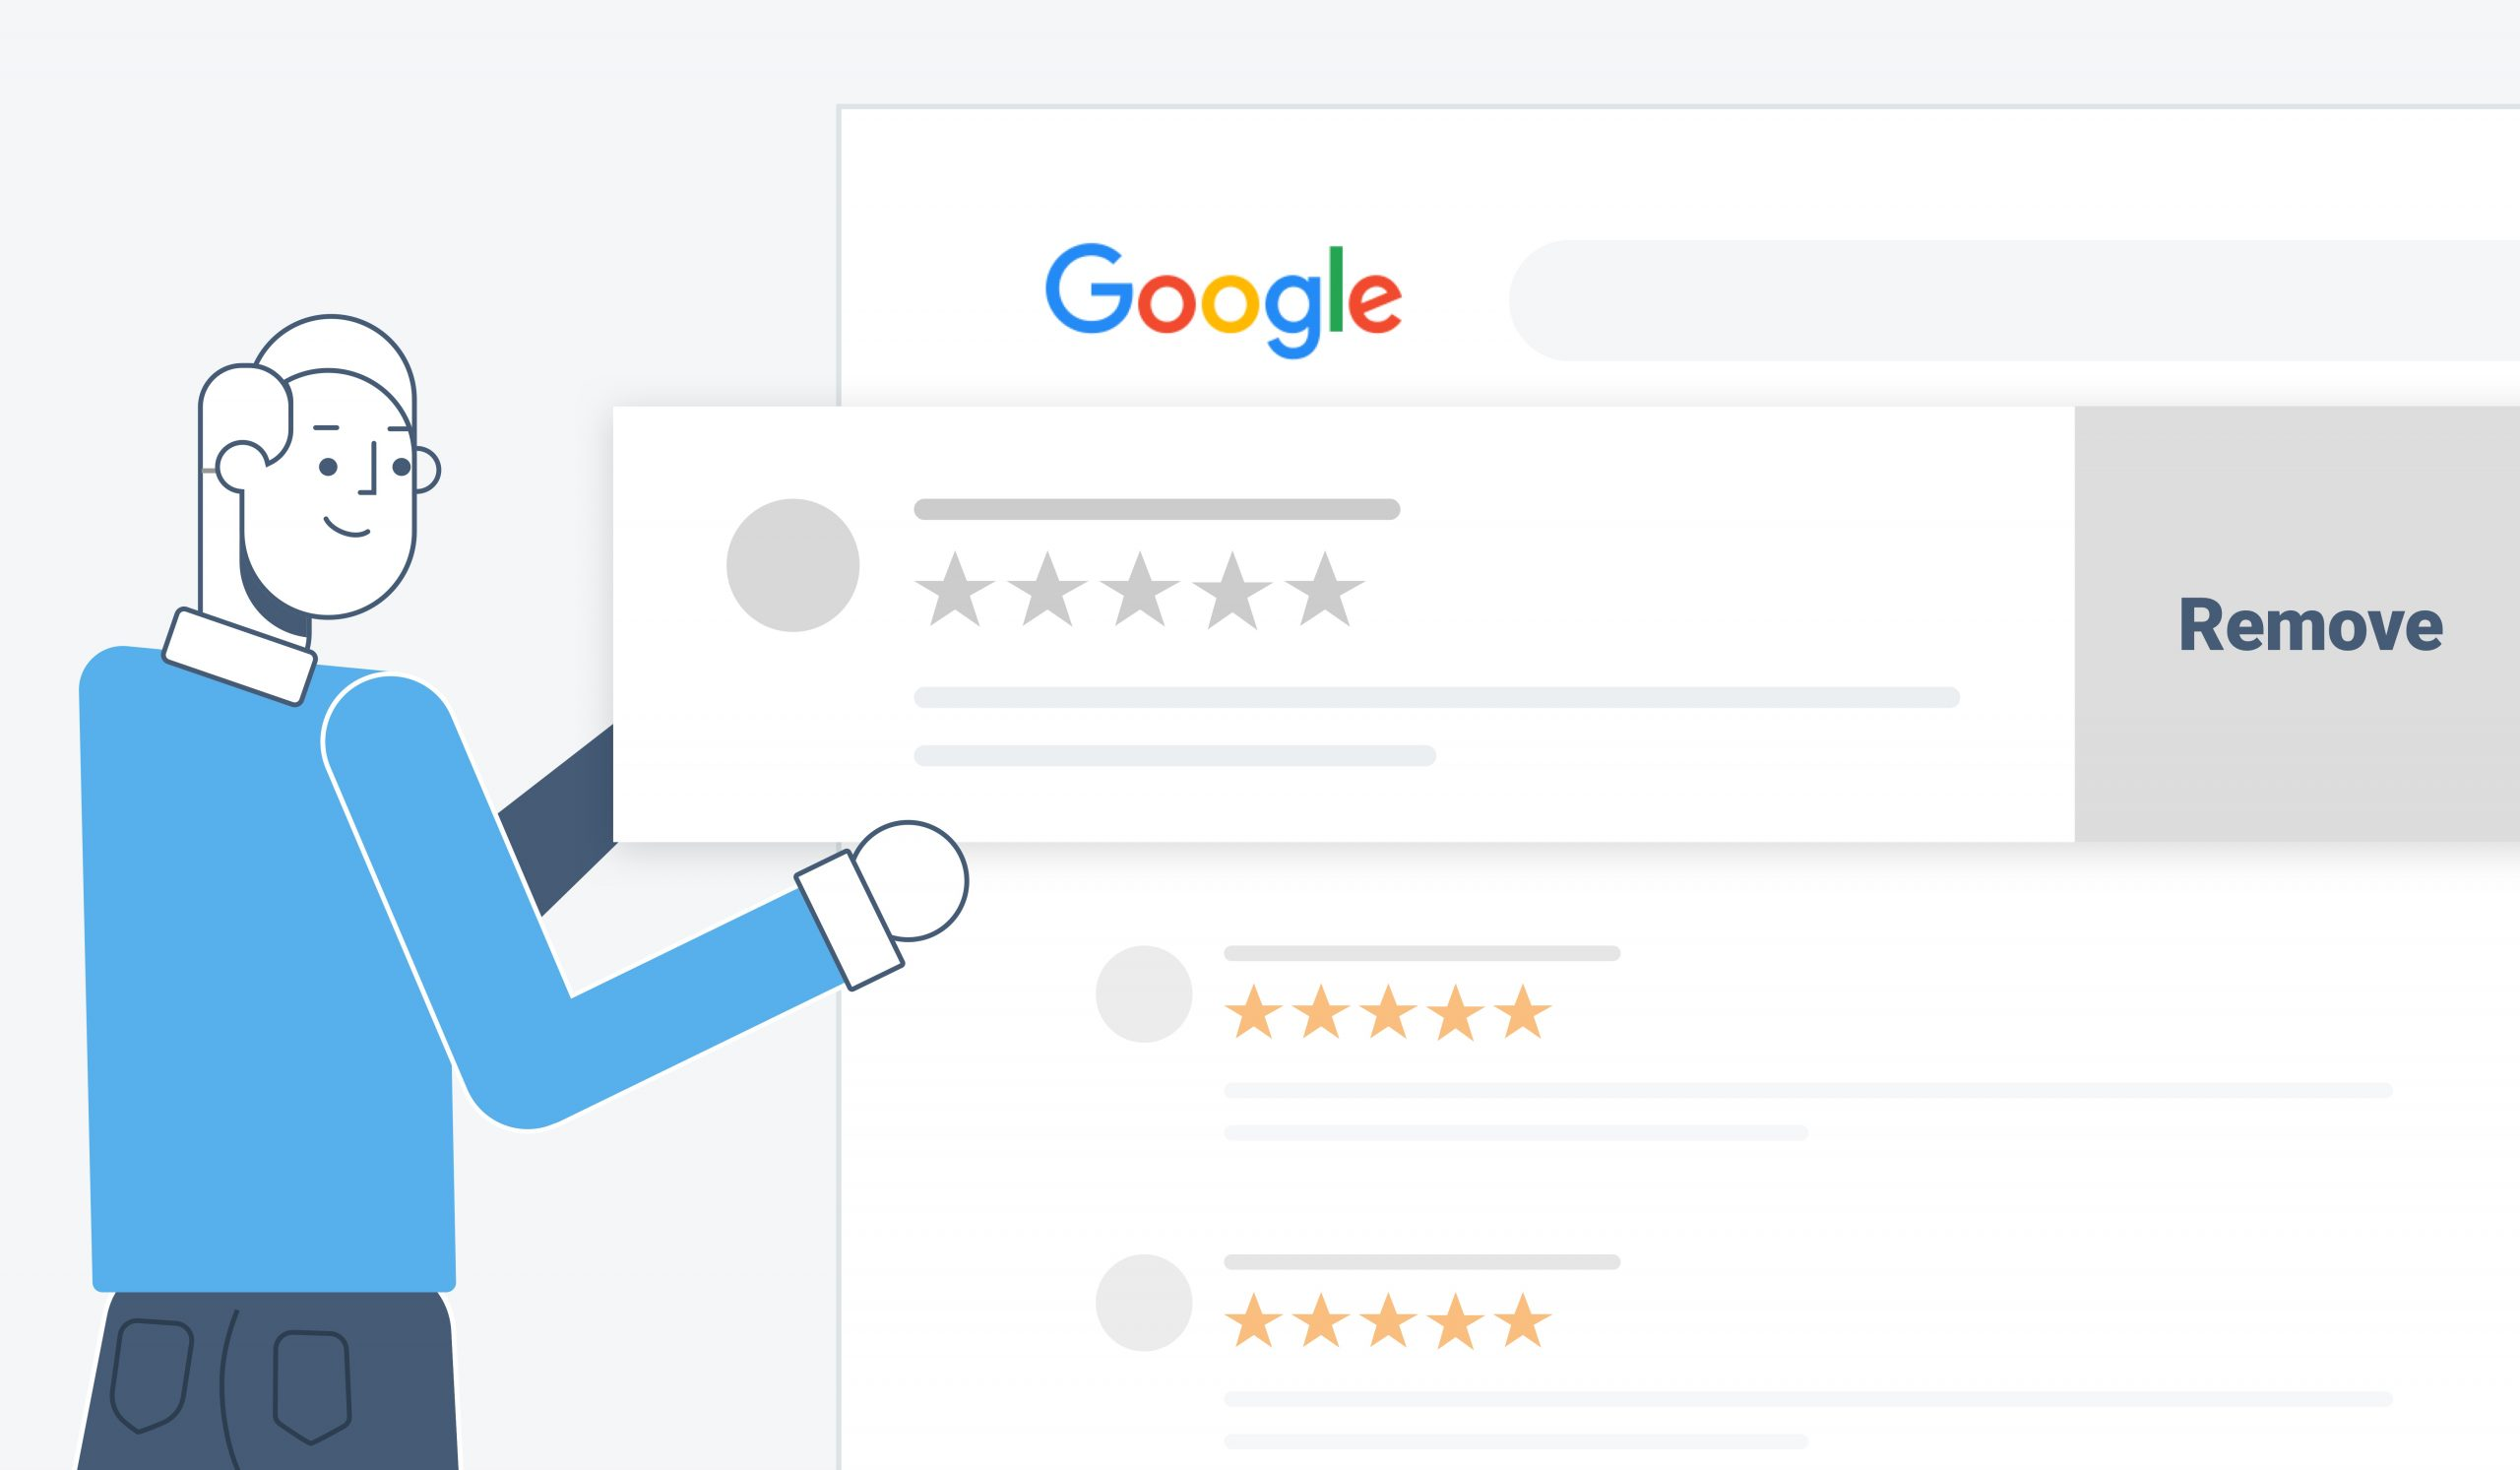 https://s3.amazonaws.com/blog4.0/blog/wp-content/uploads/How-to-Remove-Google-Reviews-%E2%80%93-Is-it-Possible_-Copy@3x-scaled.jpg